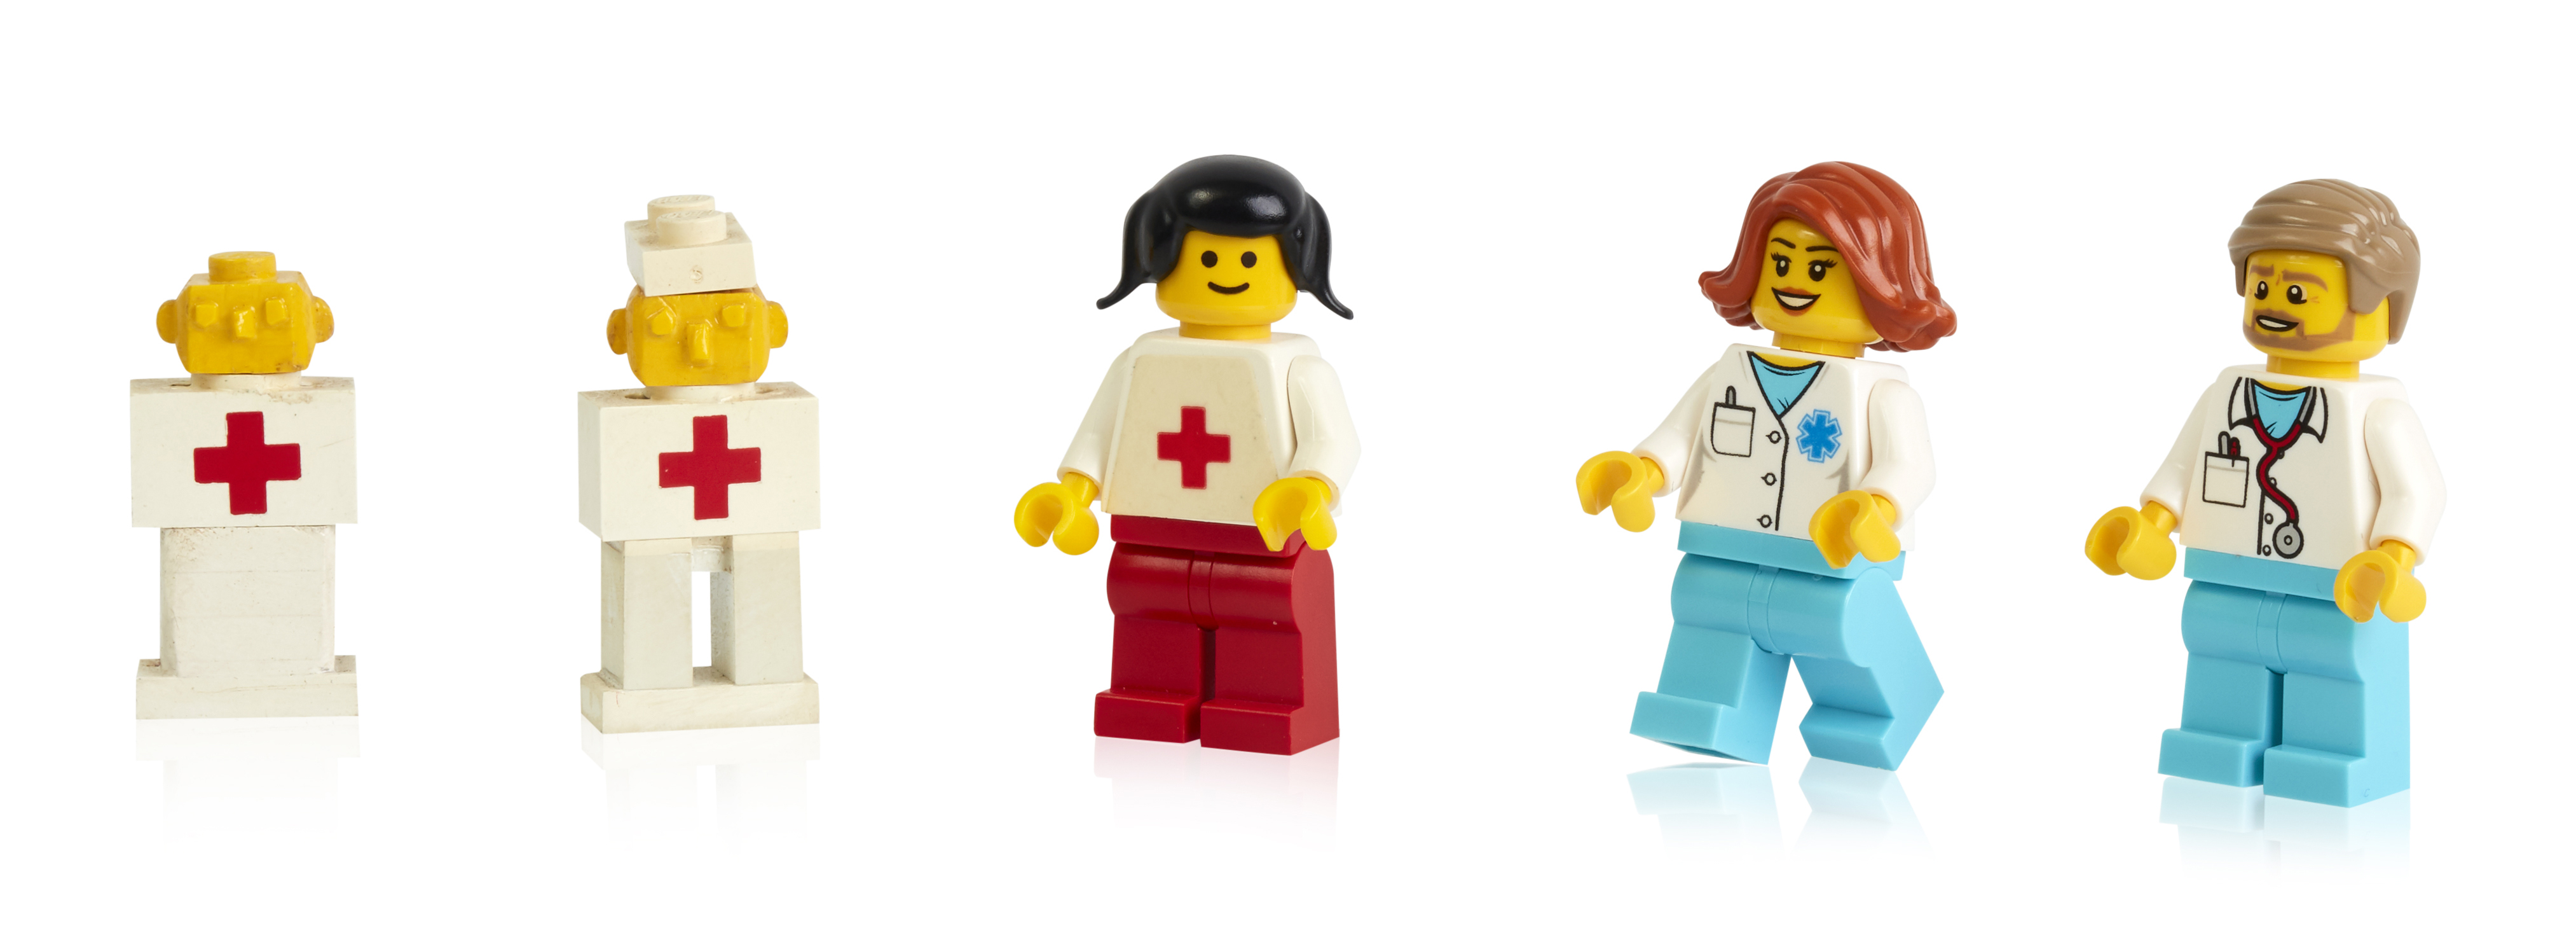 early-prototypes-first-and-more-recent-minifigure-doctors.jpg